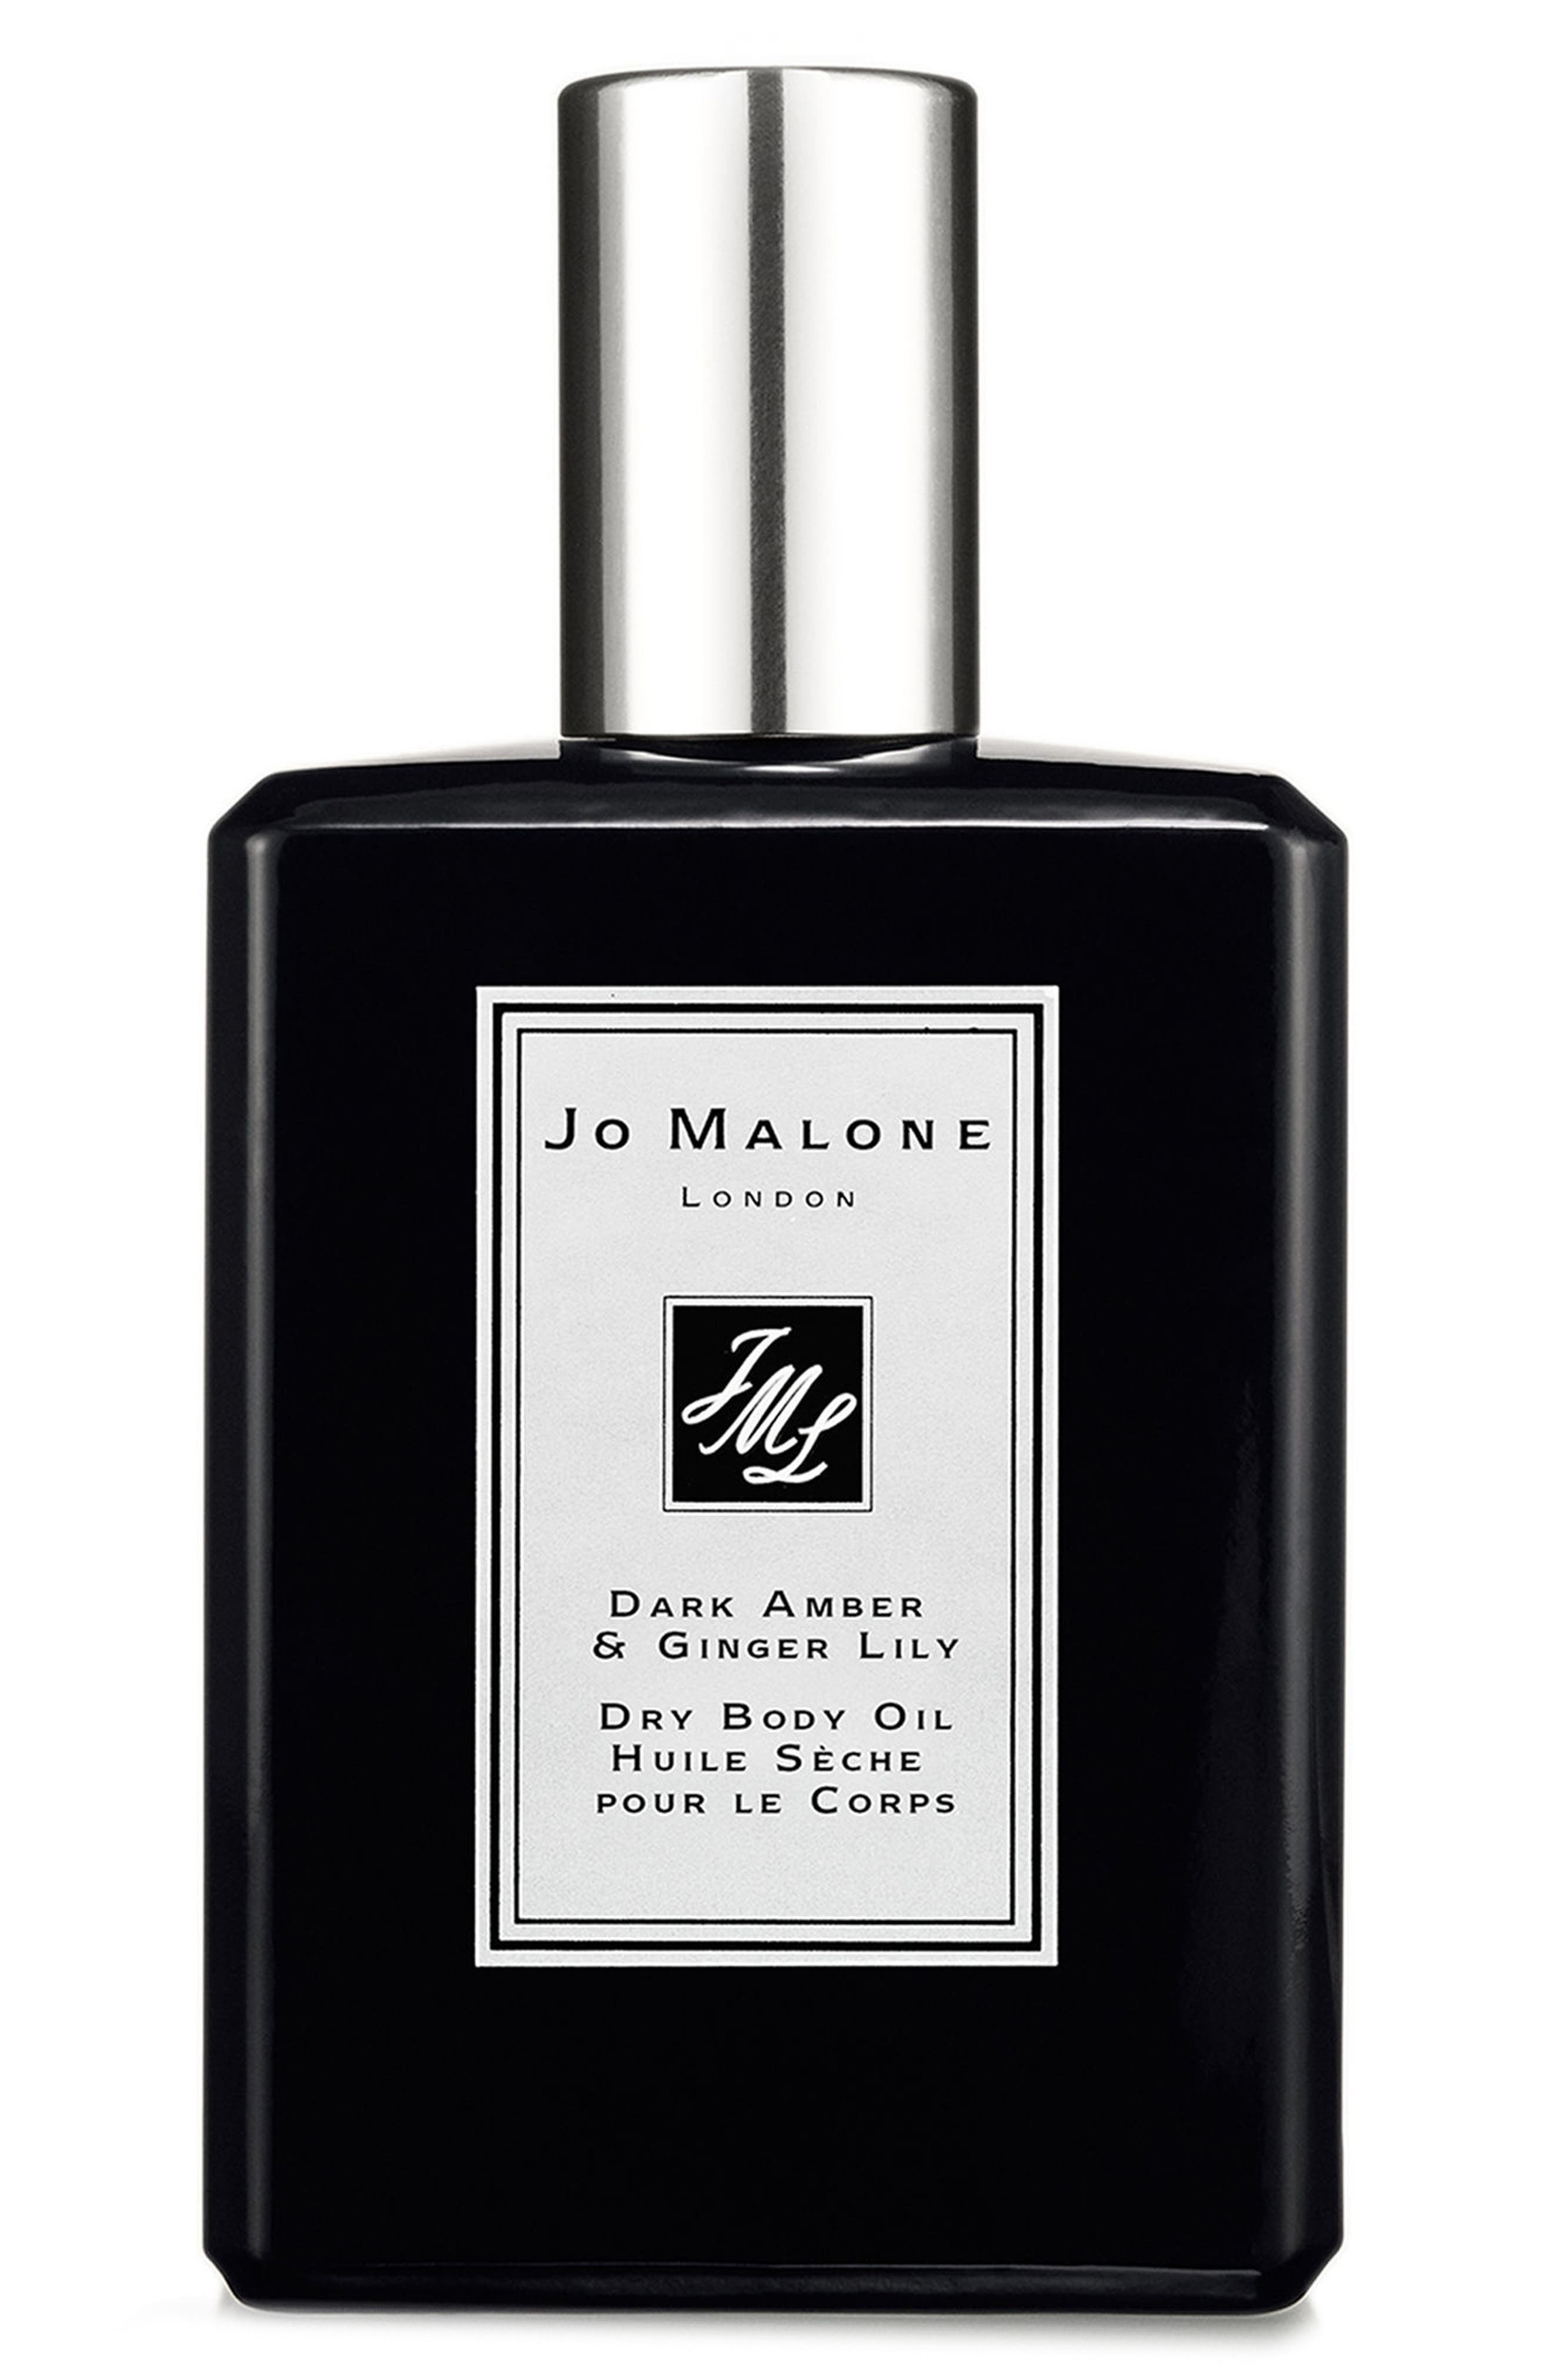 Jo Malone London™ Dark Amber & Ginger Lily Dry Body Oil